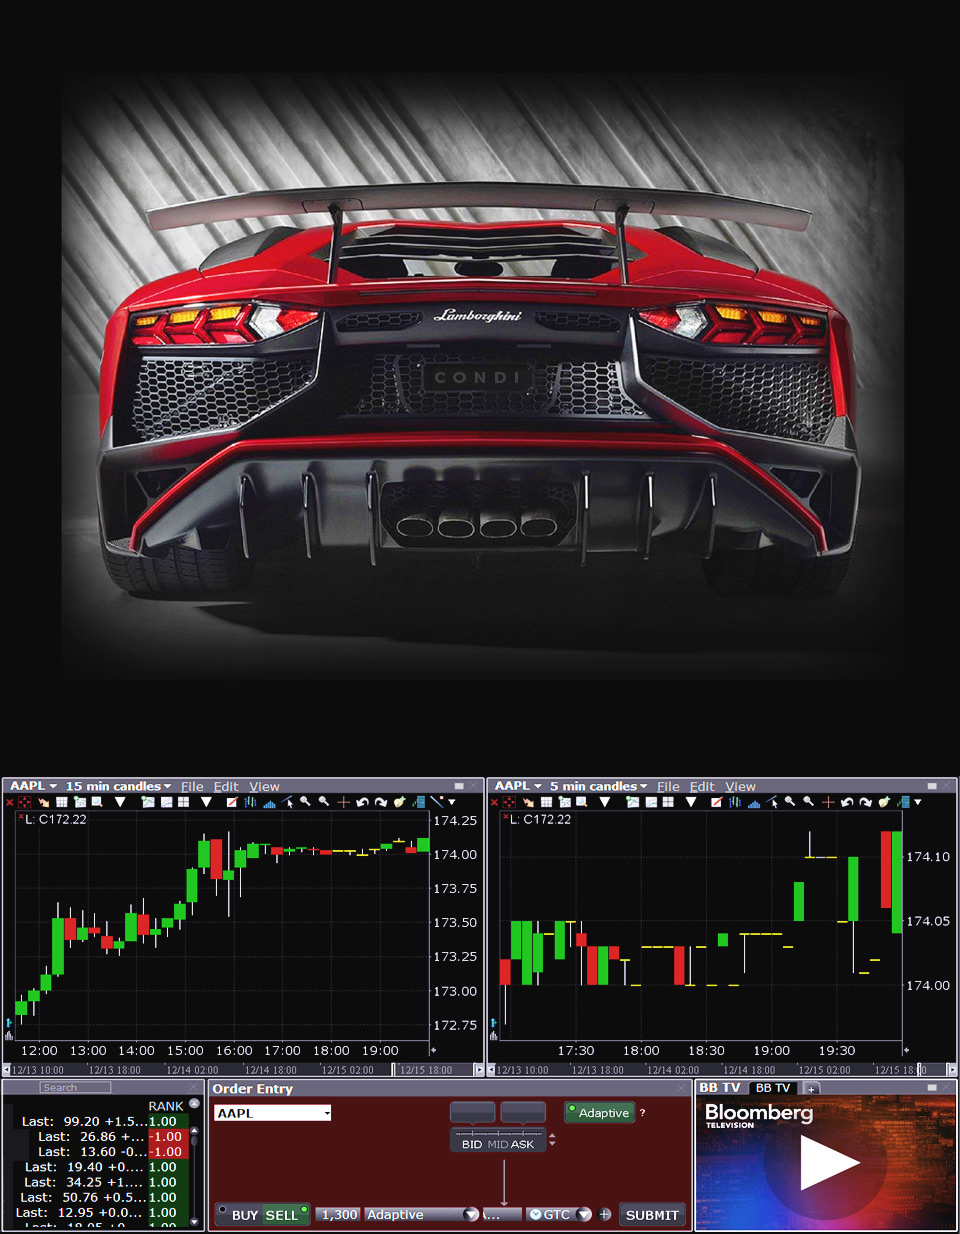 CONDI Trading - Learn To Trade With Consistency